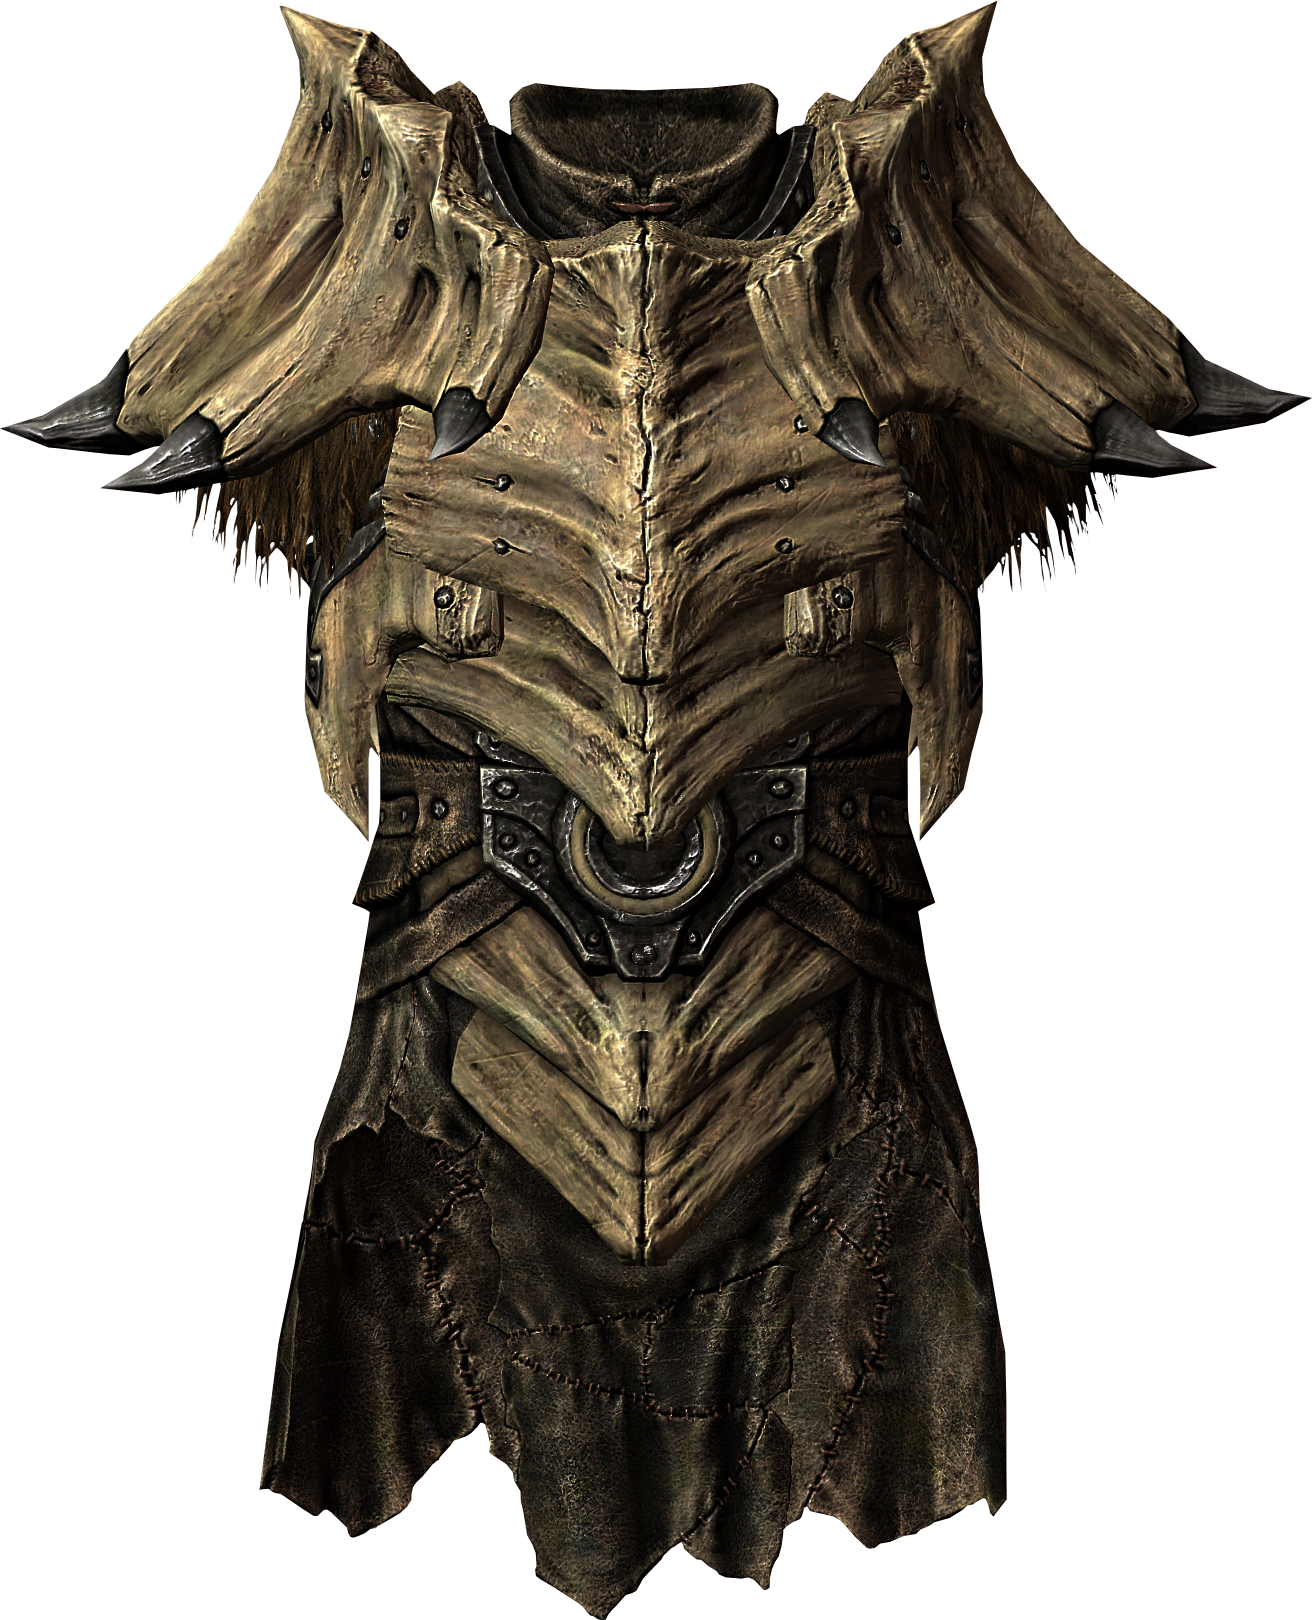 Dragonplate Armor Armor Piece Elder Scrolls Fandom Polish your personal project or design with these dragon transparent png images, make it even more personalized and more. dragonplate armor armor piece elder